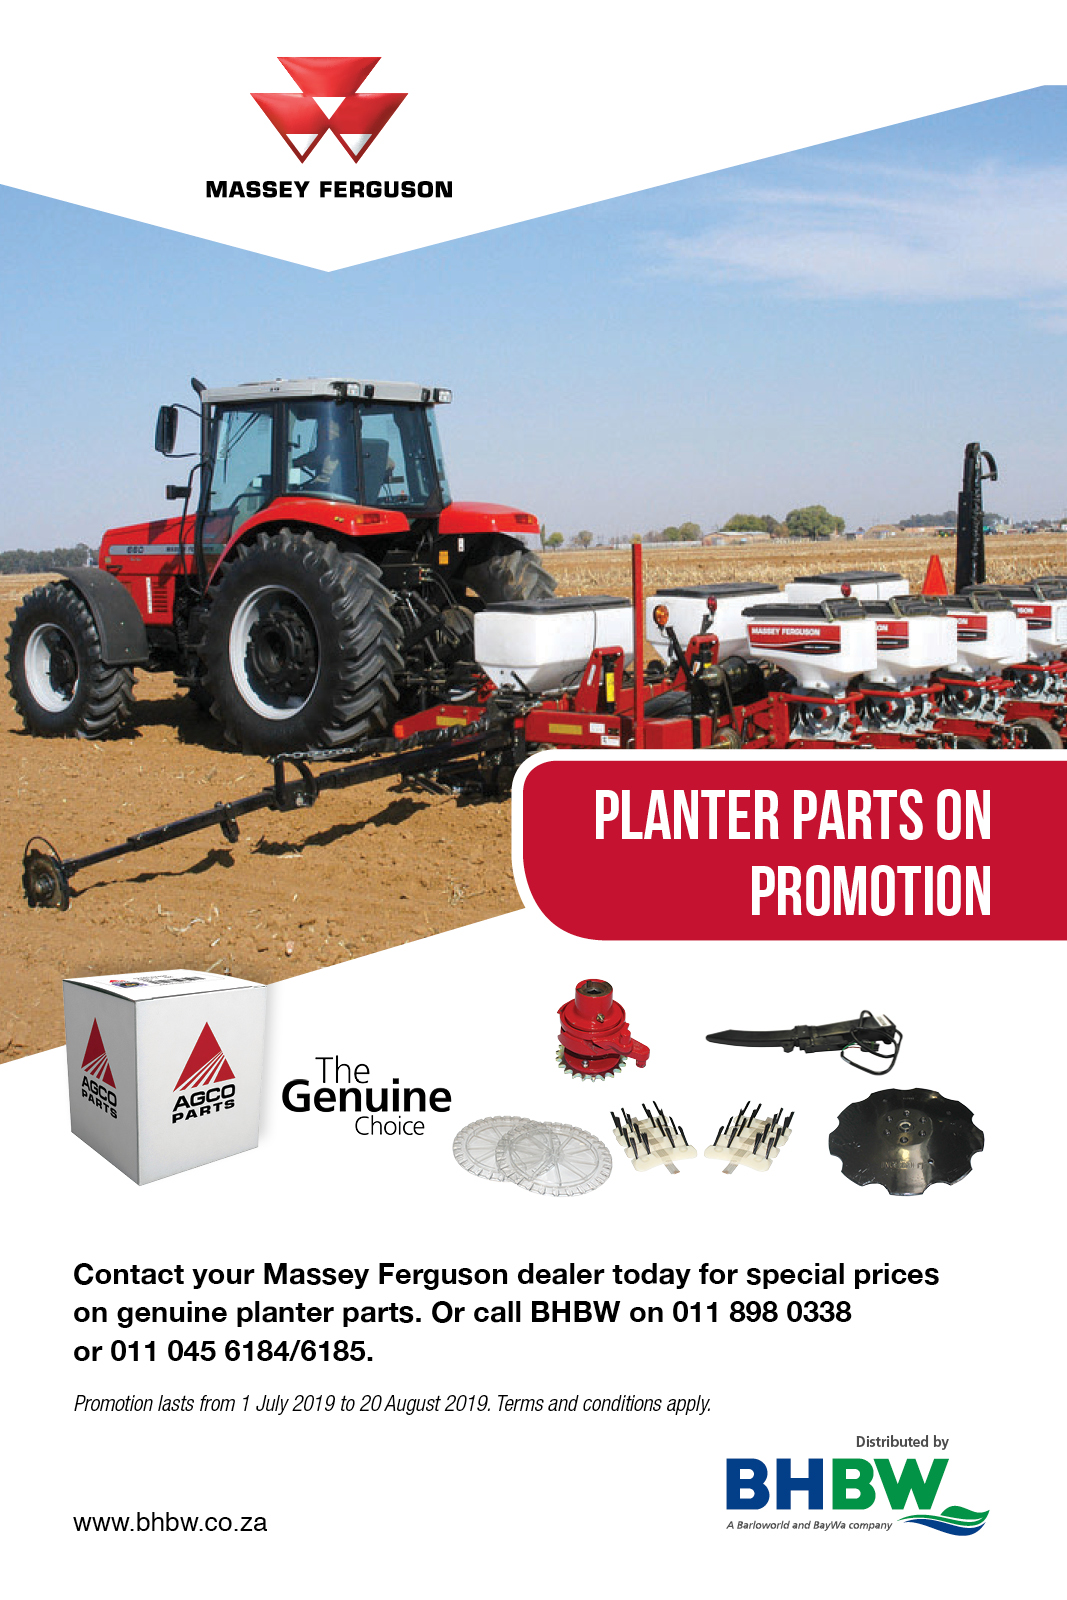 Planter parts on promotion - BHBW